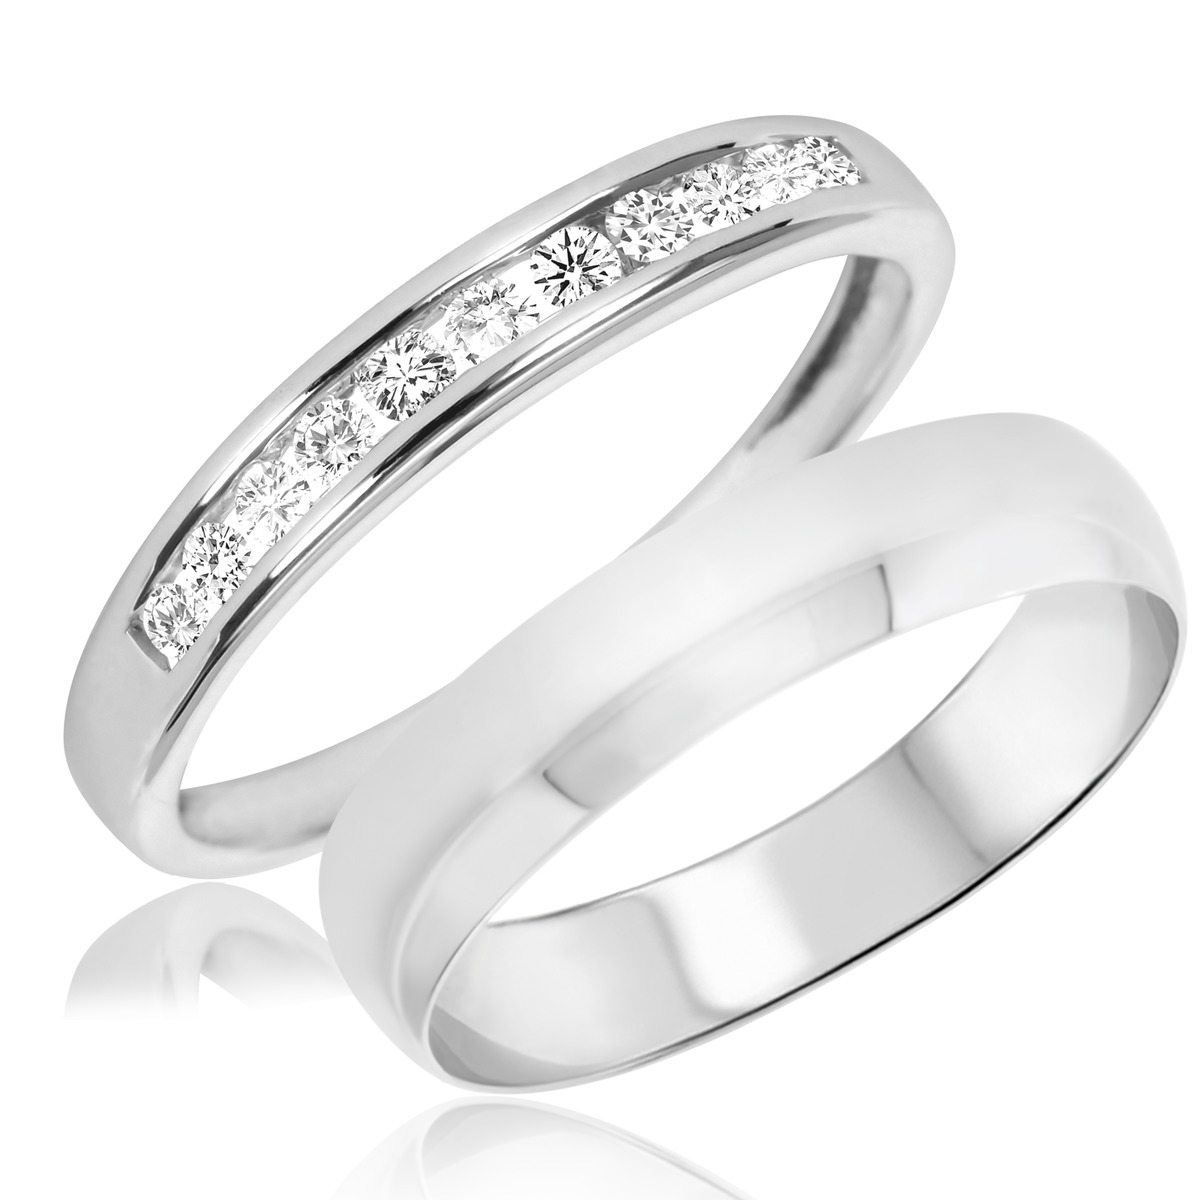 1/5 Carat T.W. Round Cut Diamond His and Hers Wedding Band Set 10K White Gold